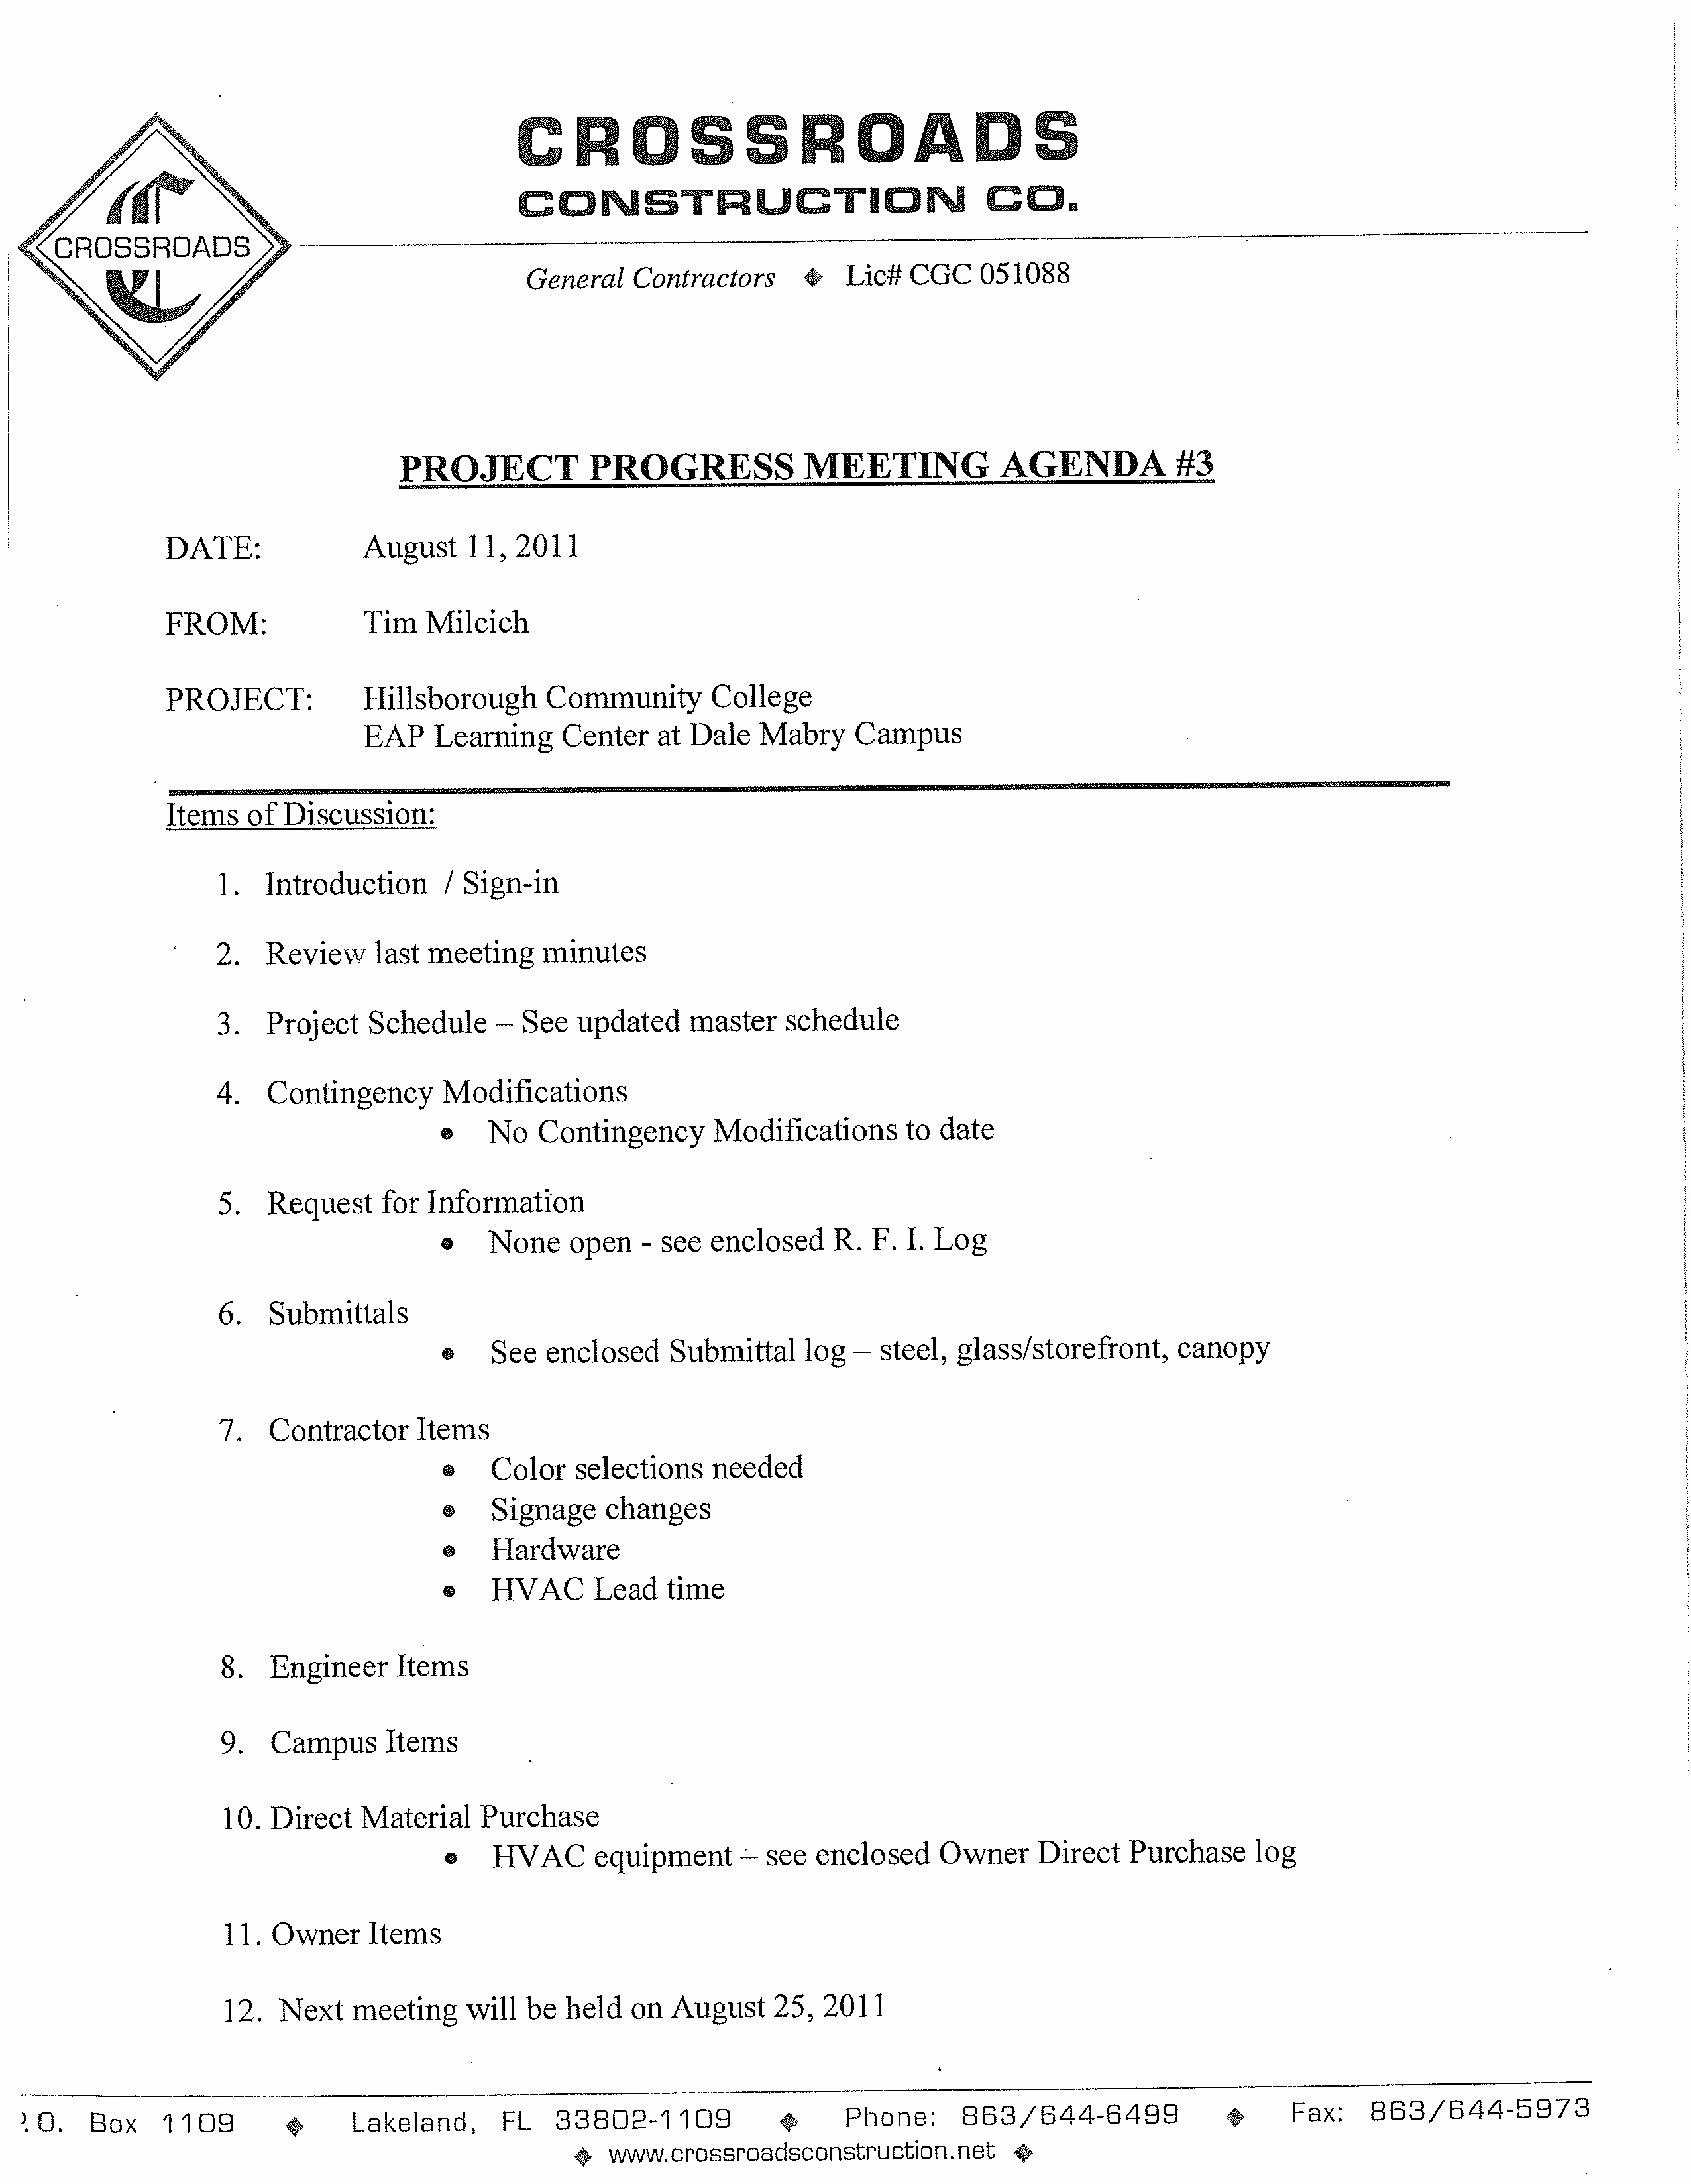 Construction Meeting Agenda Template Awesome Free Project Progress Meeting Agenda